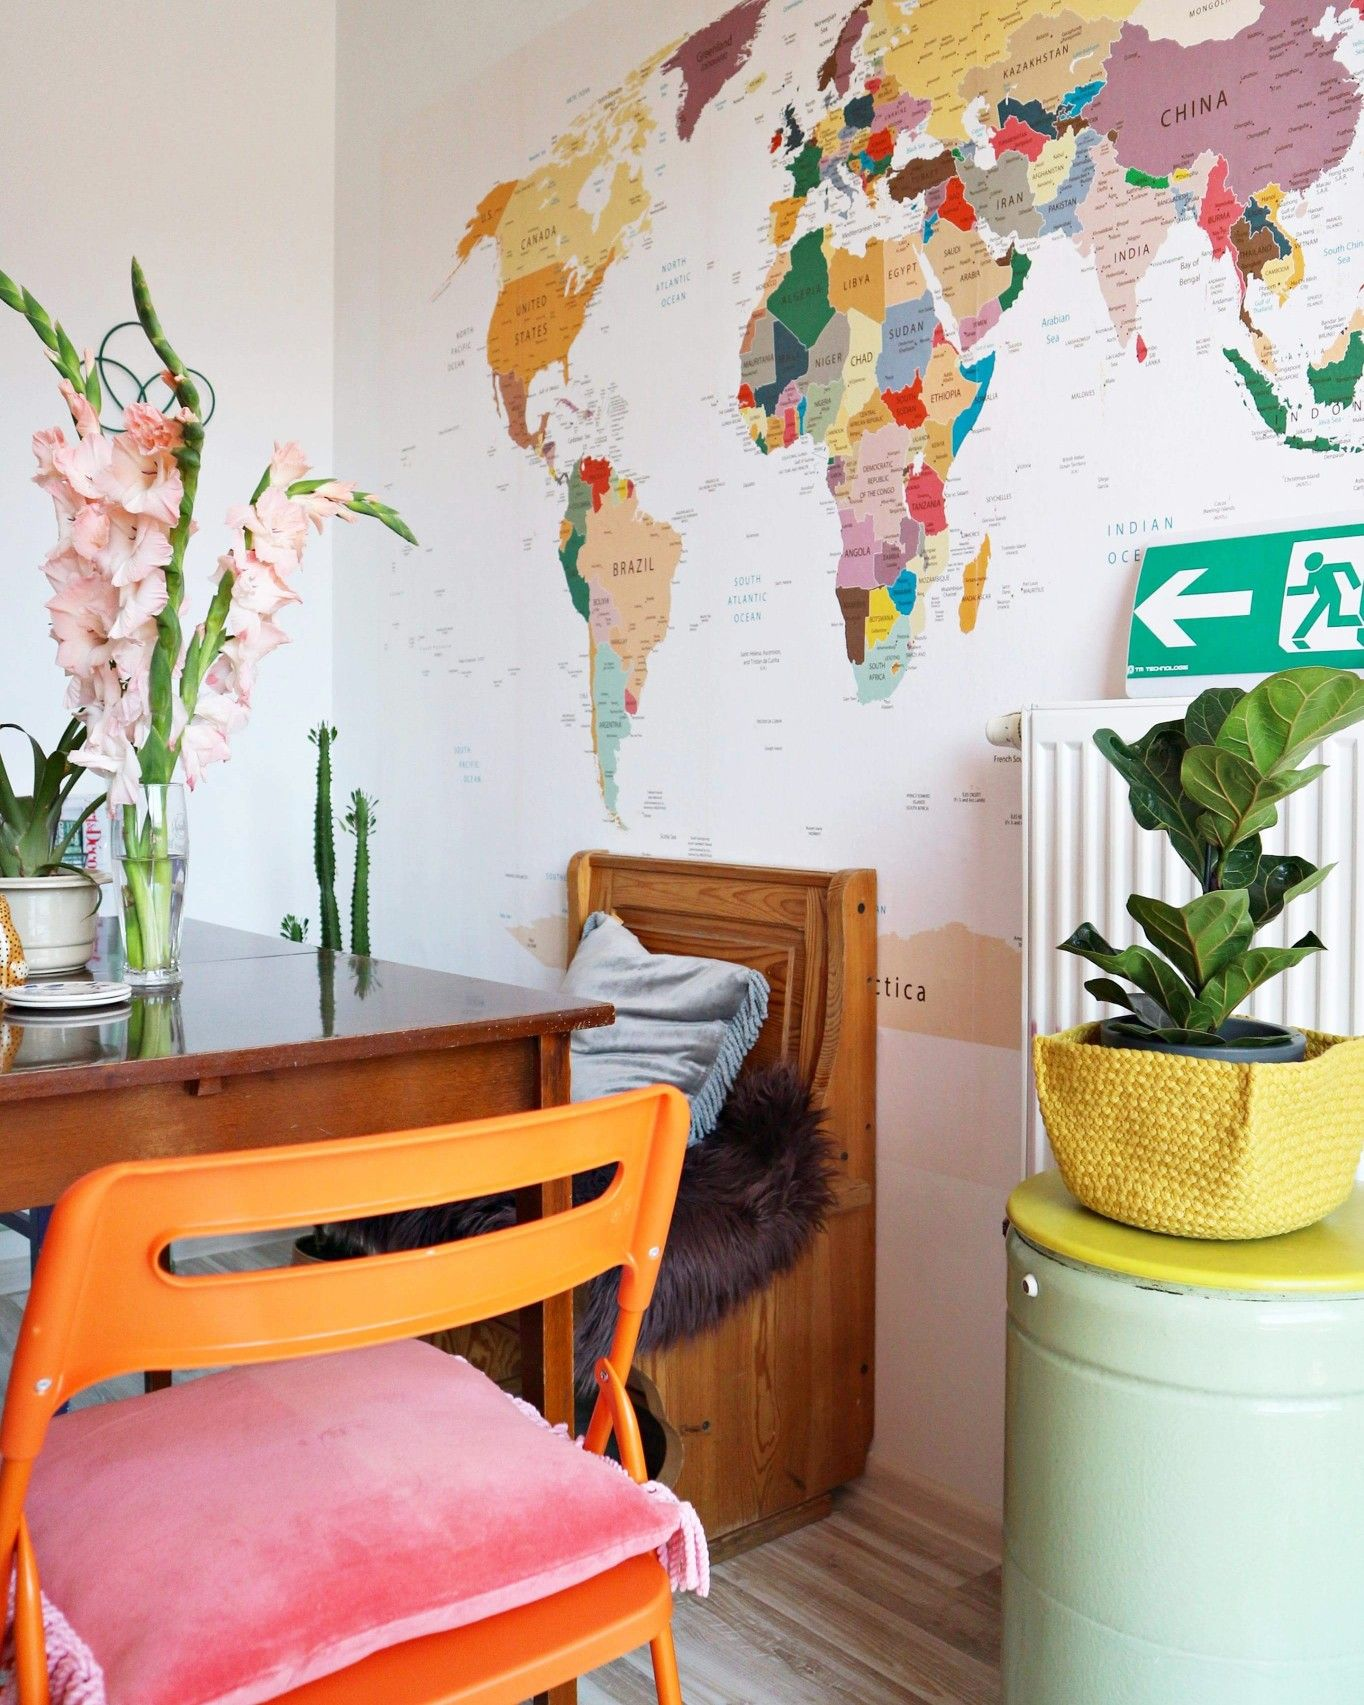 My colorful dining room with a world map on the wall and lots of